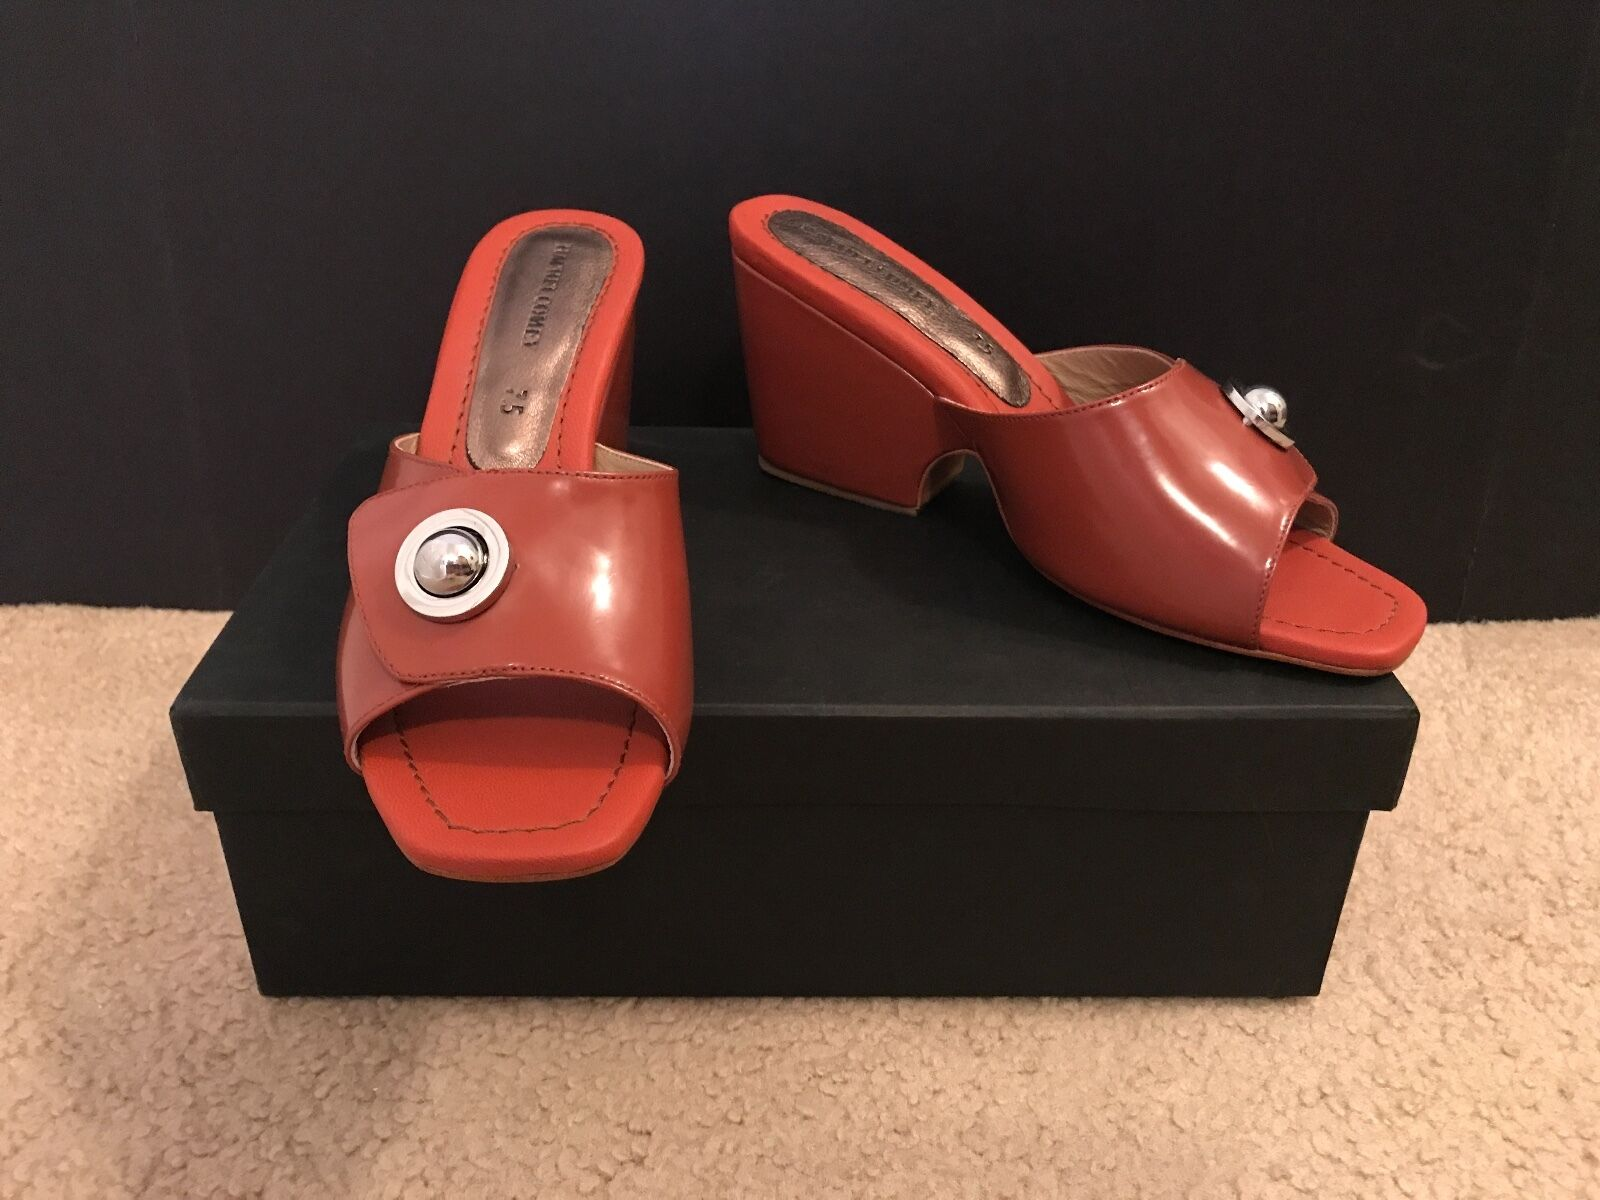 ANTHROPOLOGIE BY RACHEL COMEY HESS MULES SIZE 7,5M ROGUE SATINADO